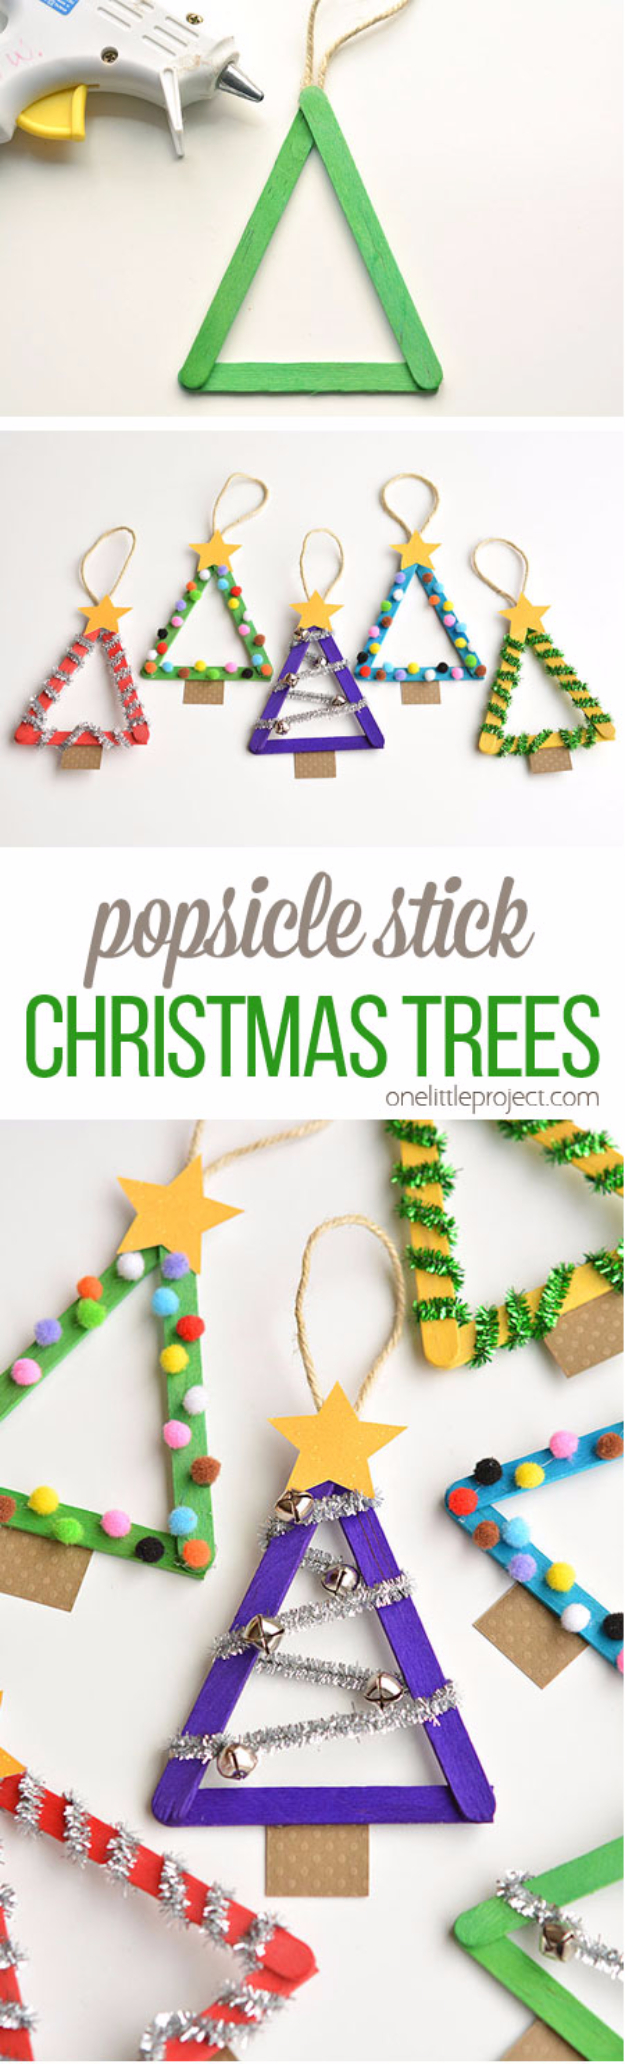 Christmas Crafts for Kids to Make Christmas Tree - Popsicle Stick Christmas Trees - Cool Handmade Ornaments, DIY Decorating Ideas and Ornament Tutorials - Cheap Christmas Home Decor - Xmas Crafts #christmas #diy #crafts